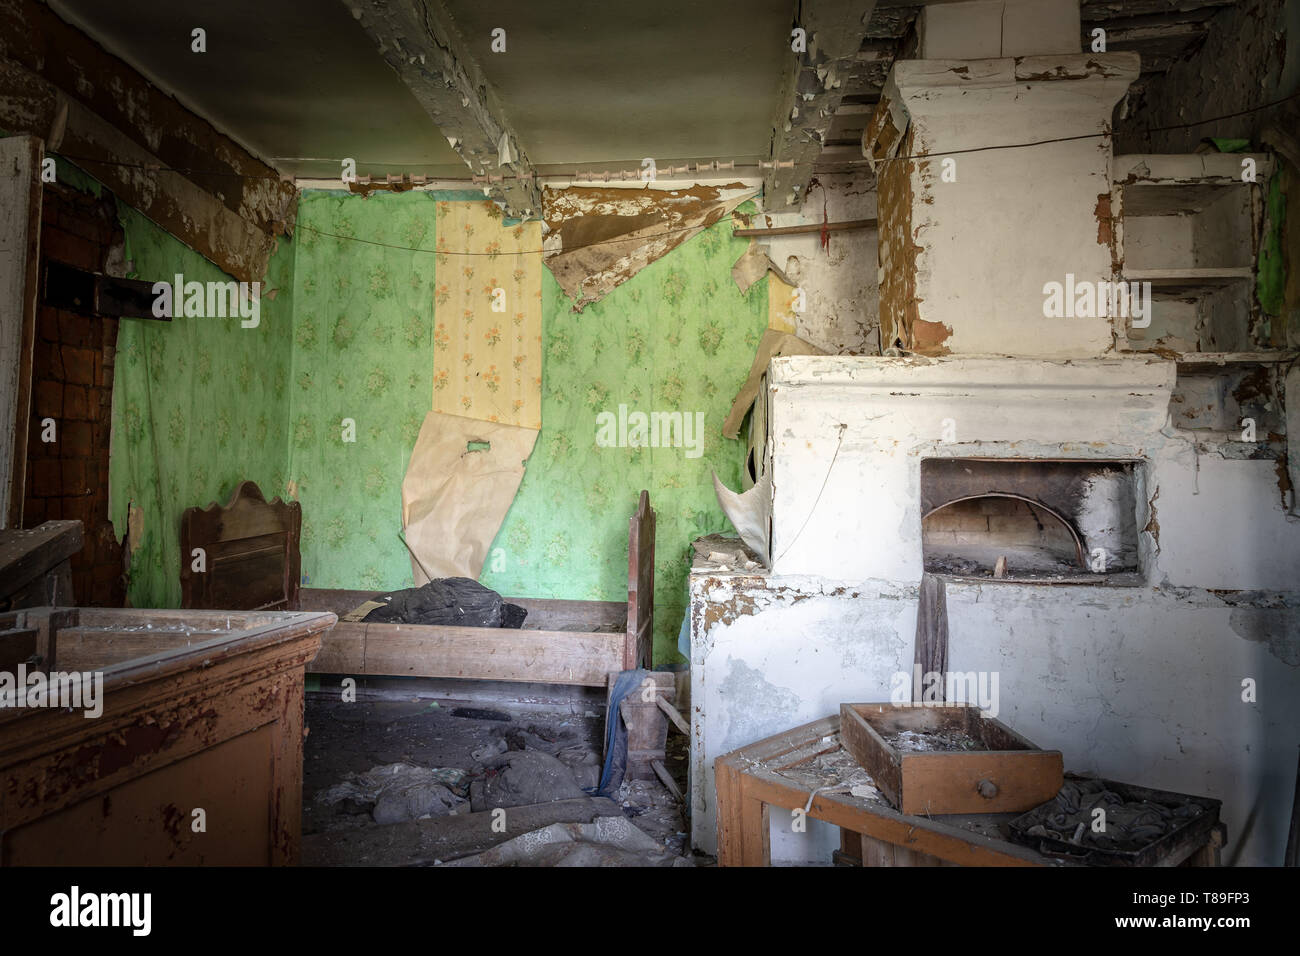 Interior with furnace and bed in an abandoned little house in Belarus Chernobyl exclusion zone, recently opened for the public from april 2019. - Stock Image